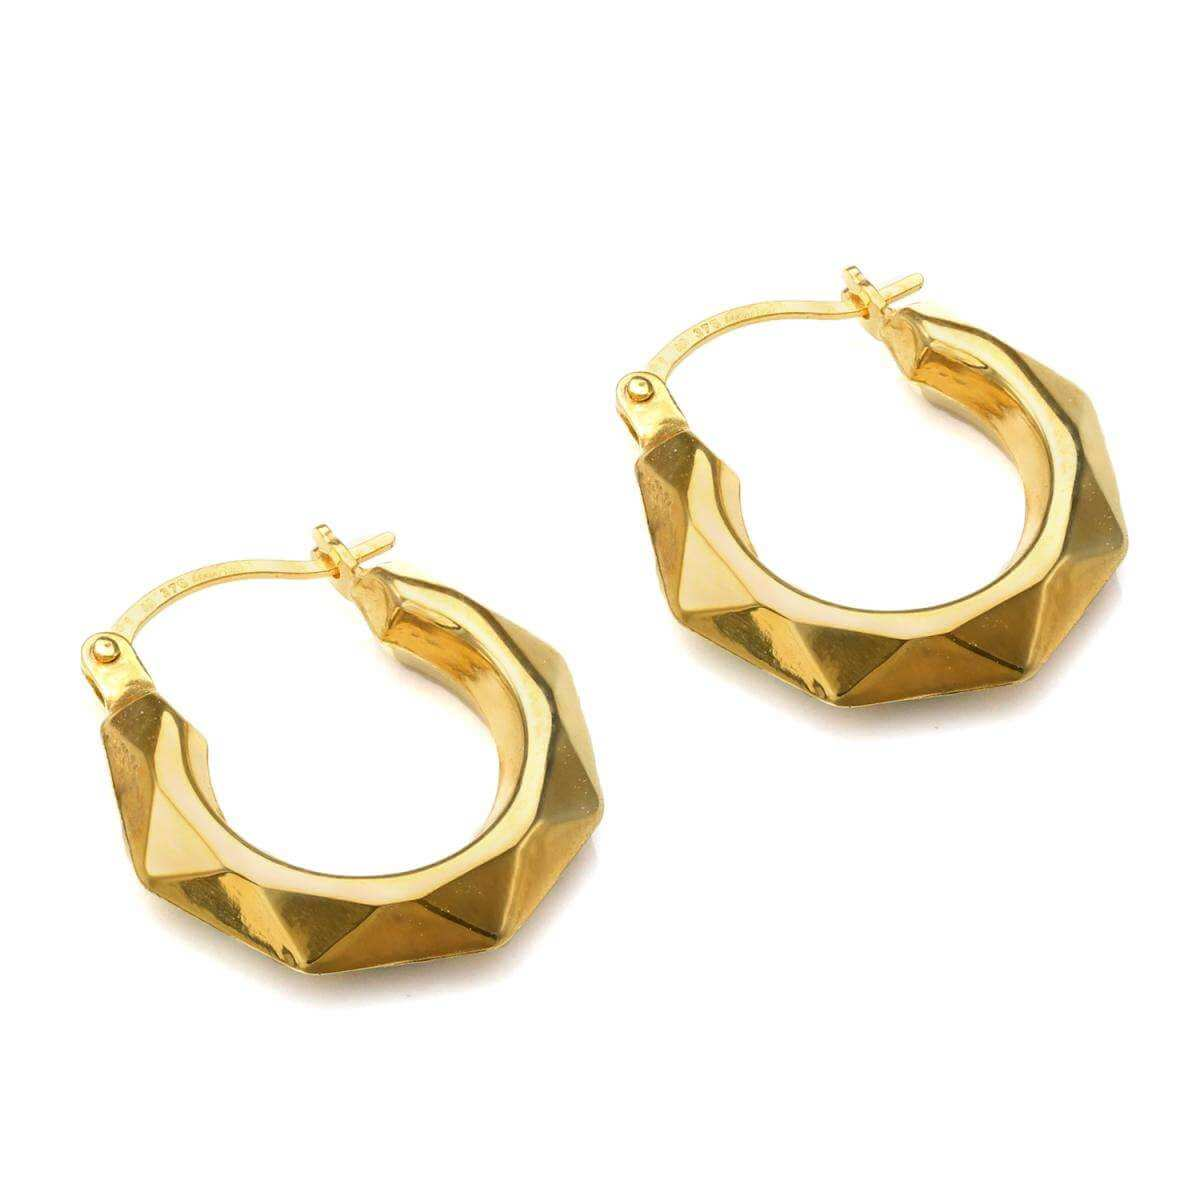 9ct Gold Faceted Fancy Creole Hoop Earrings